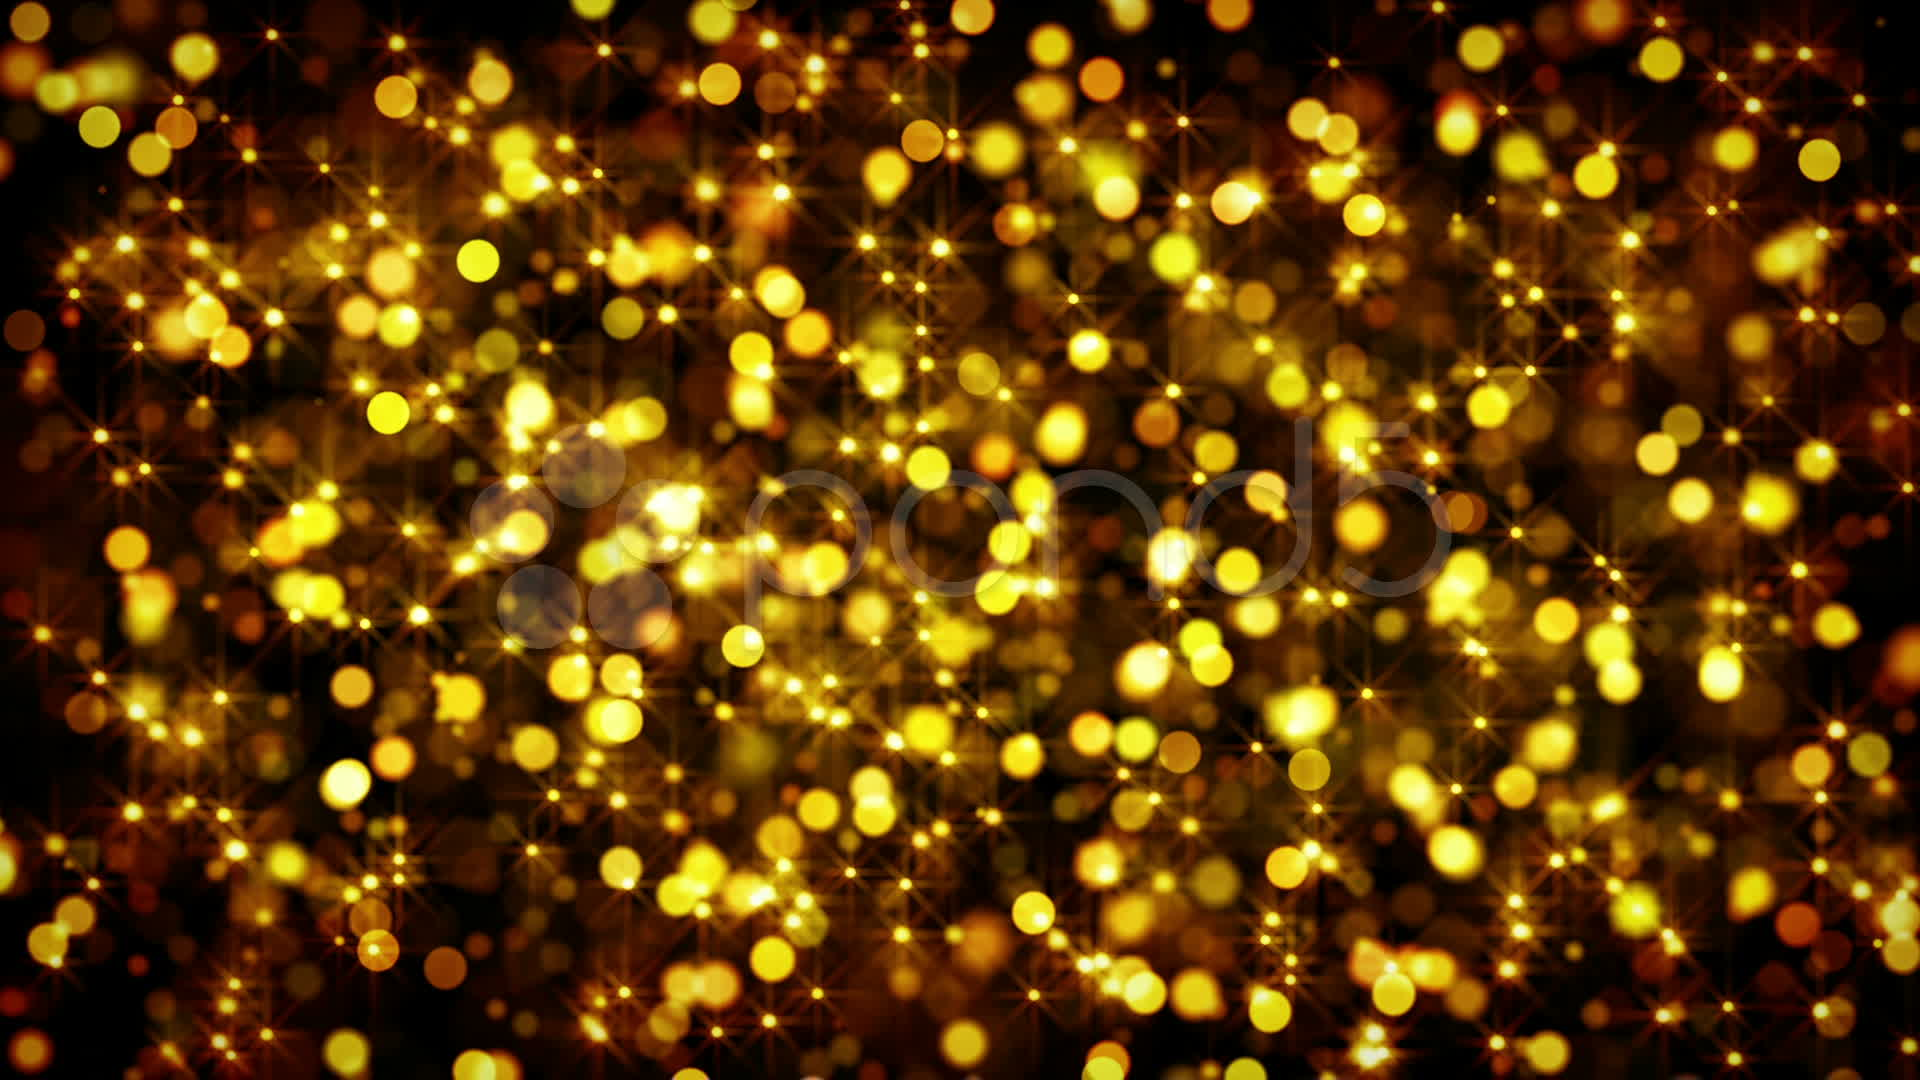 golden bokeh shiny yellow - photo #40